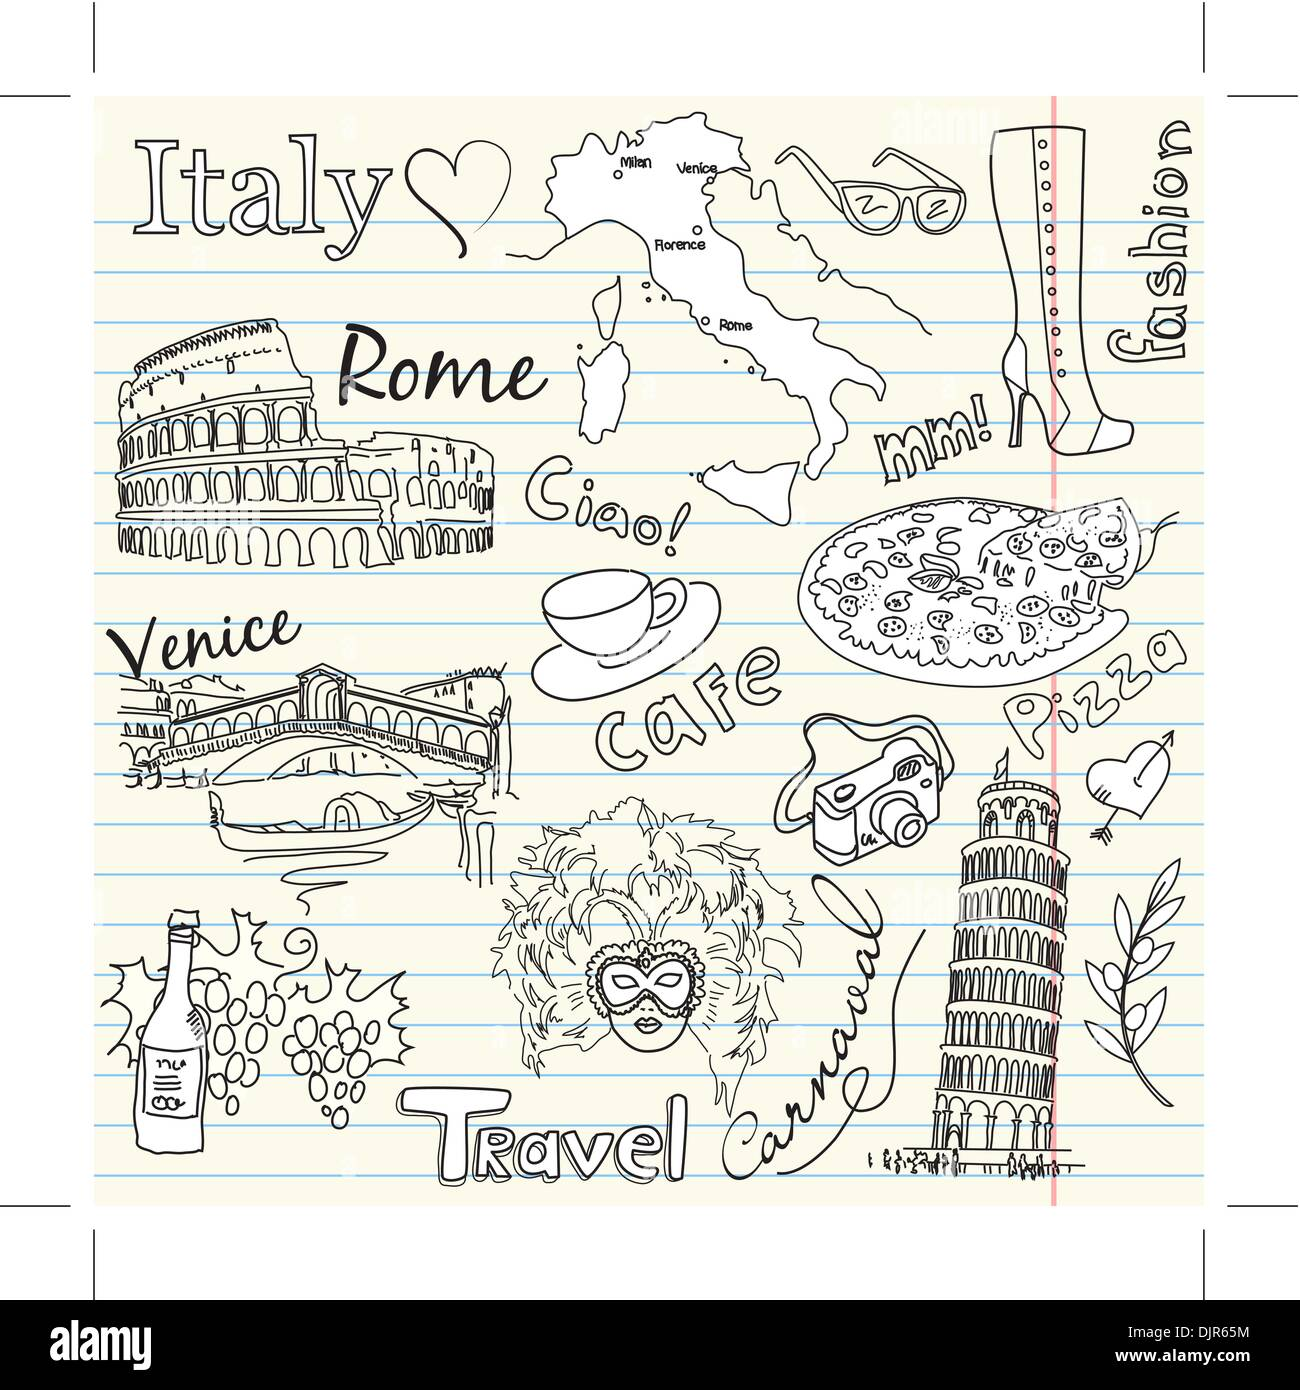 In Love With Italy - Stock Vector